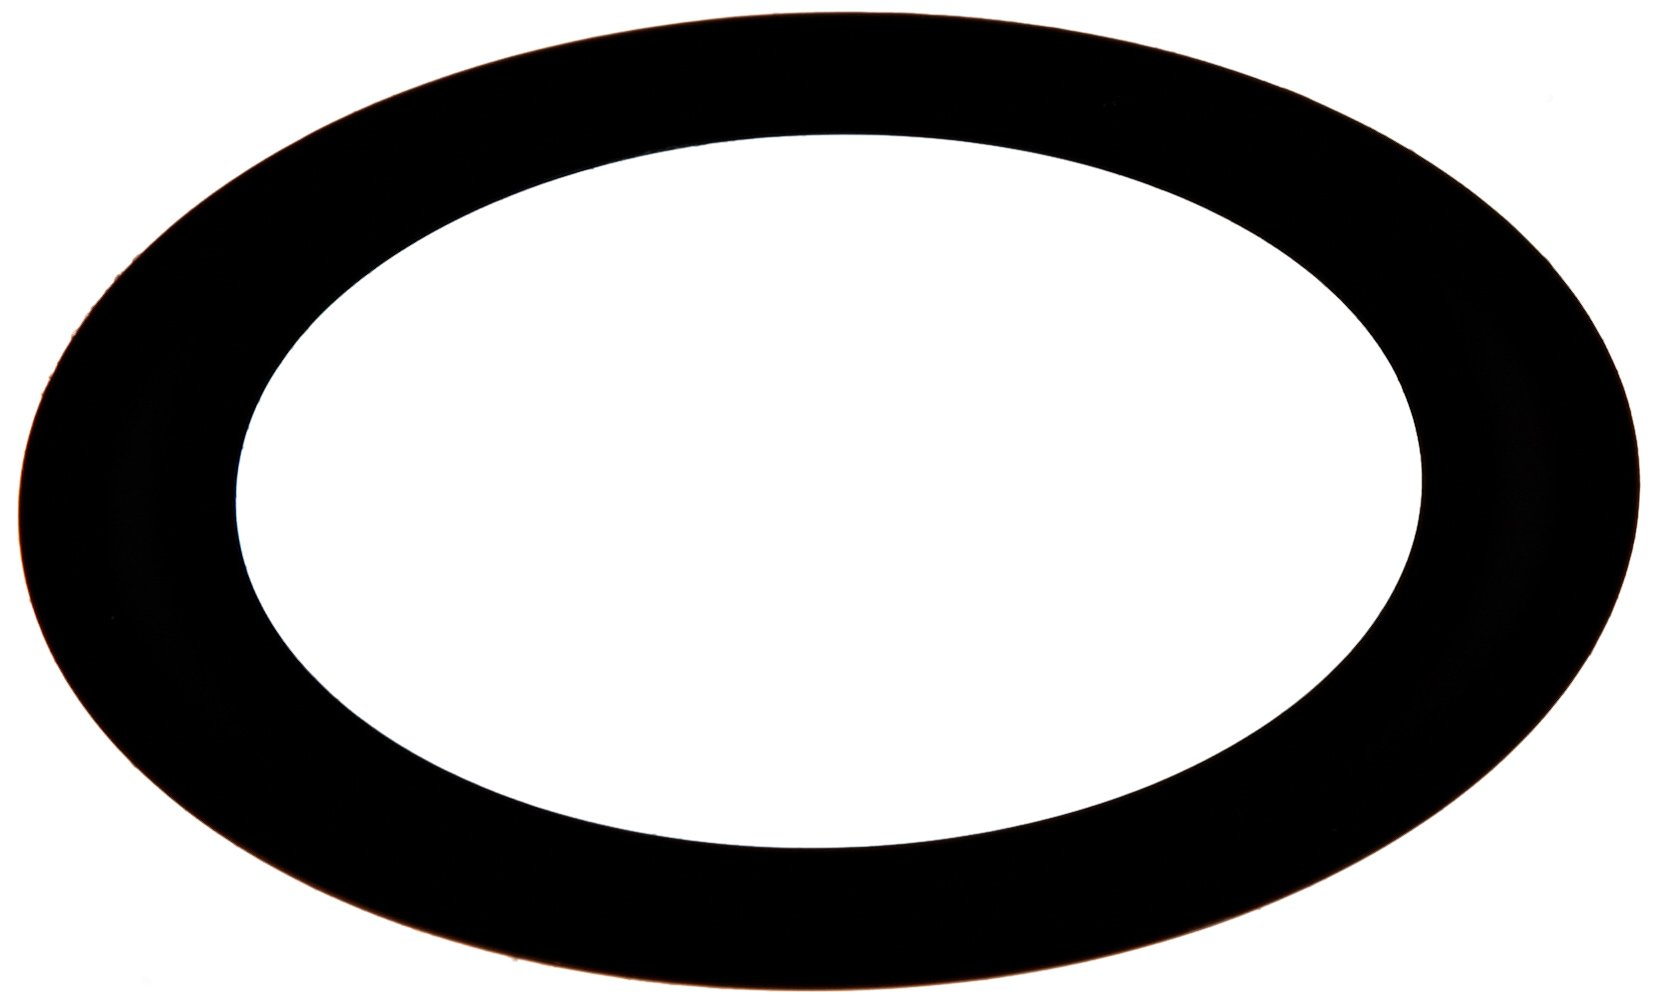 PVC (Polyvinyl Chloride) Round Shim, Black, 0.0125'' Thickness, 1-3/4'' ID, 2-3/4'' OD (Pack of 10) by Small Parts